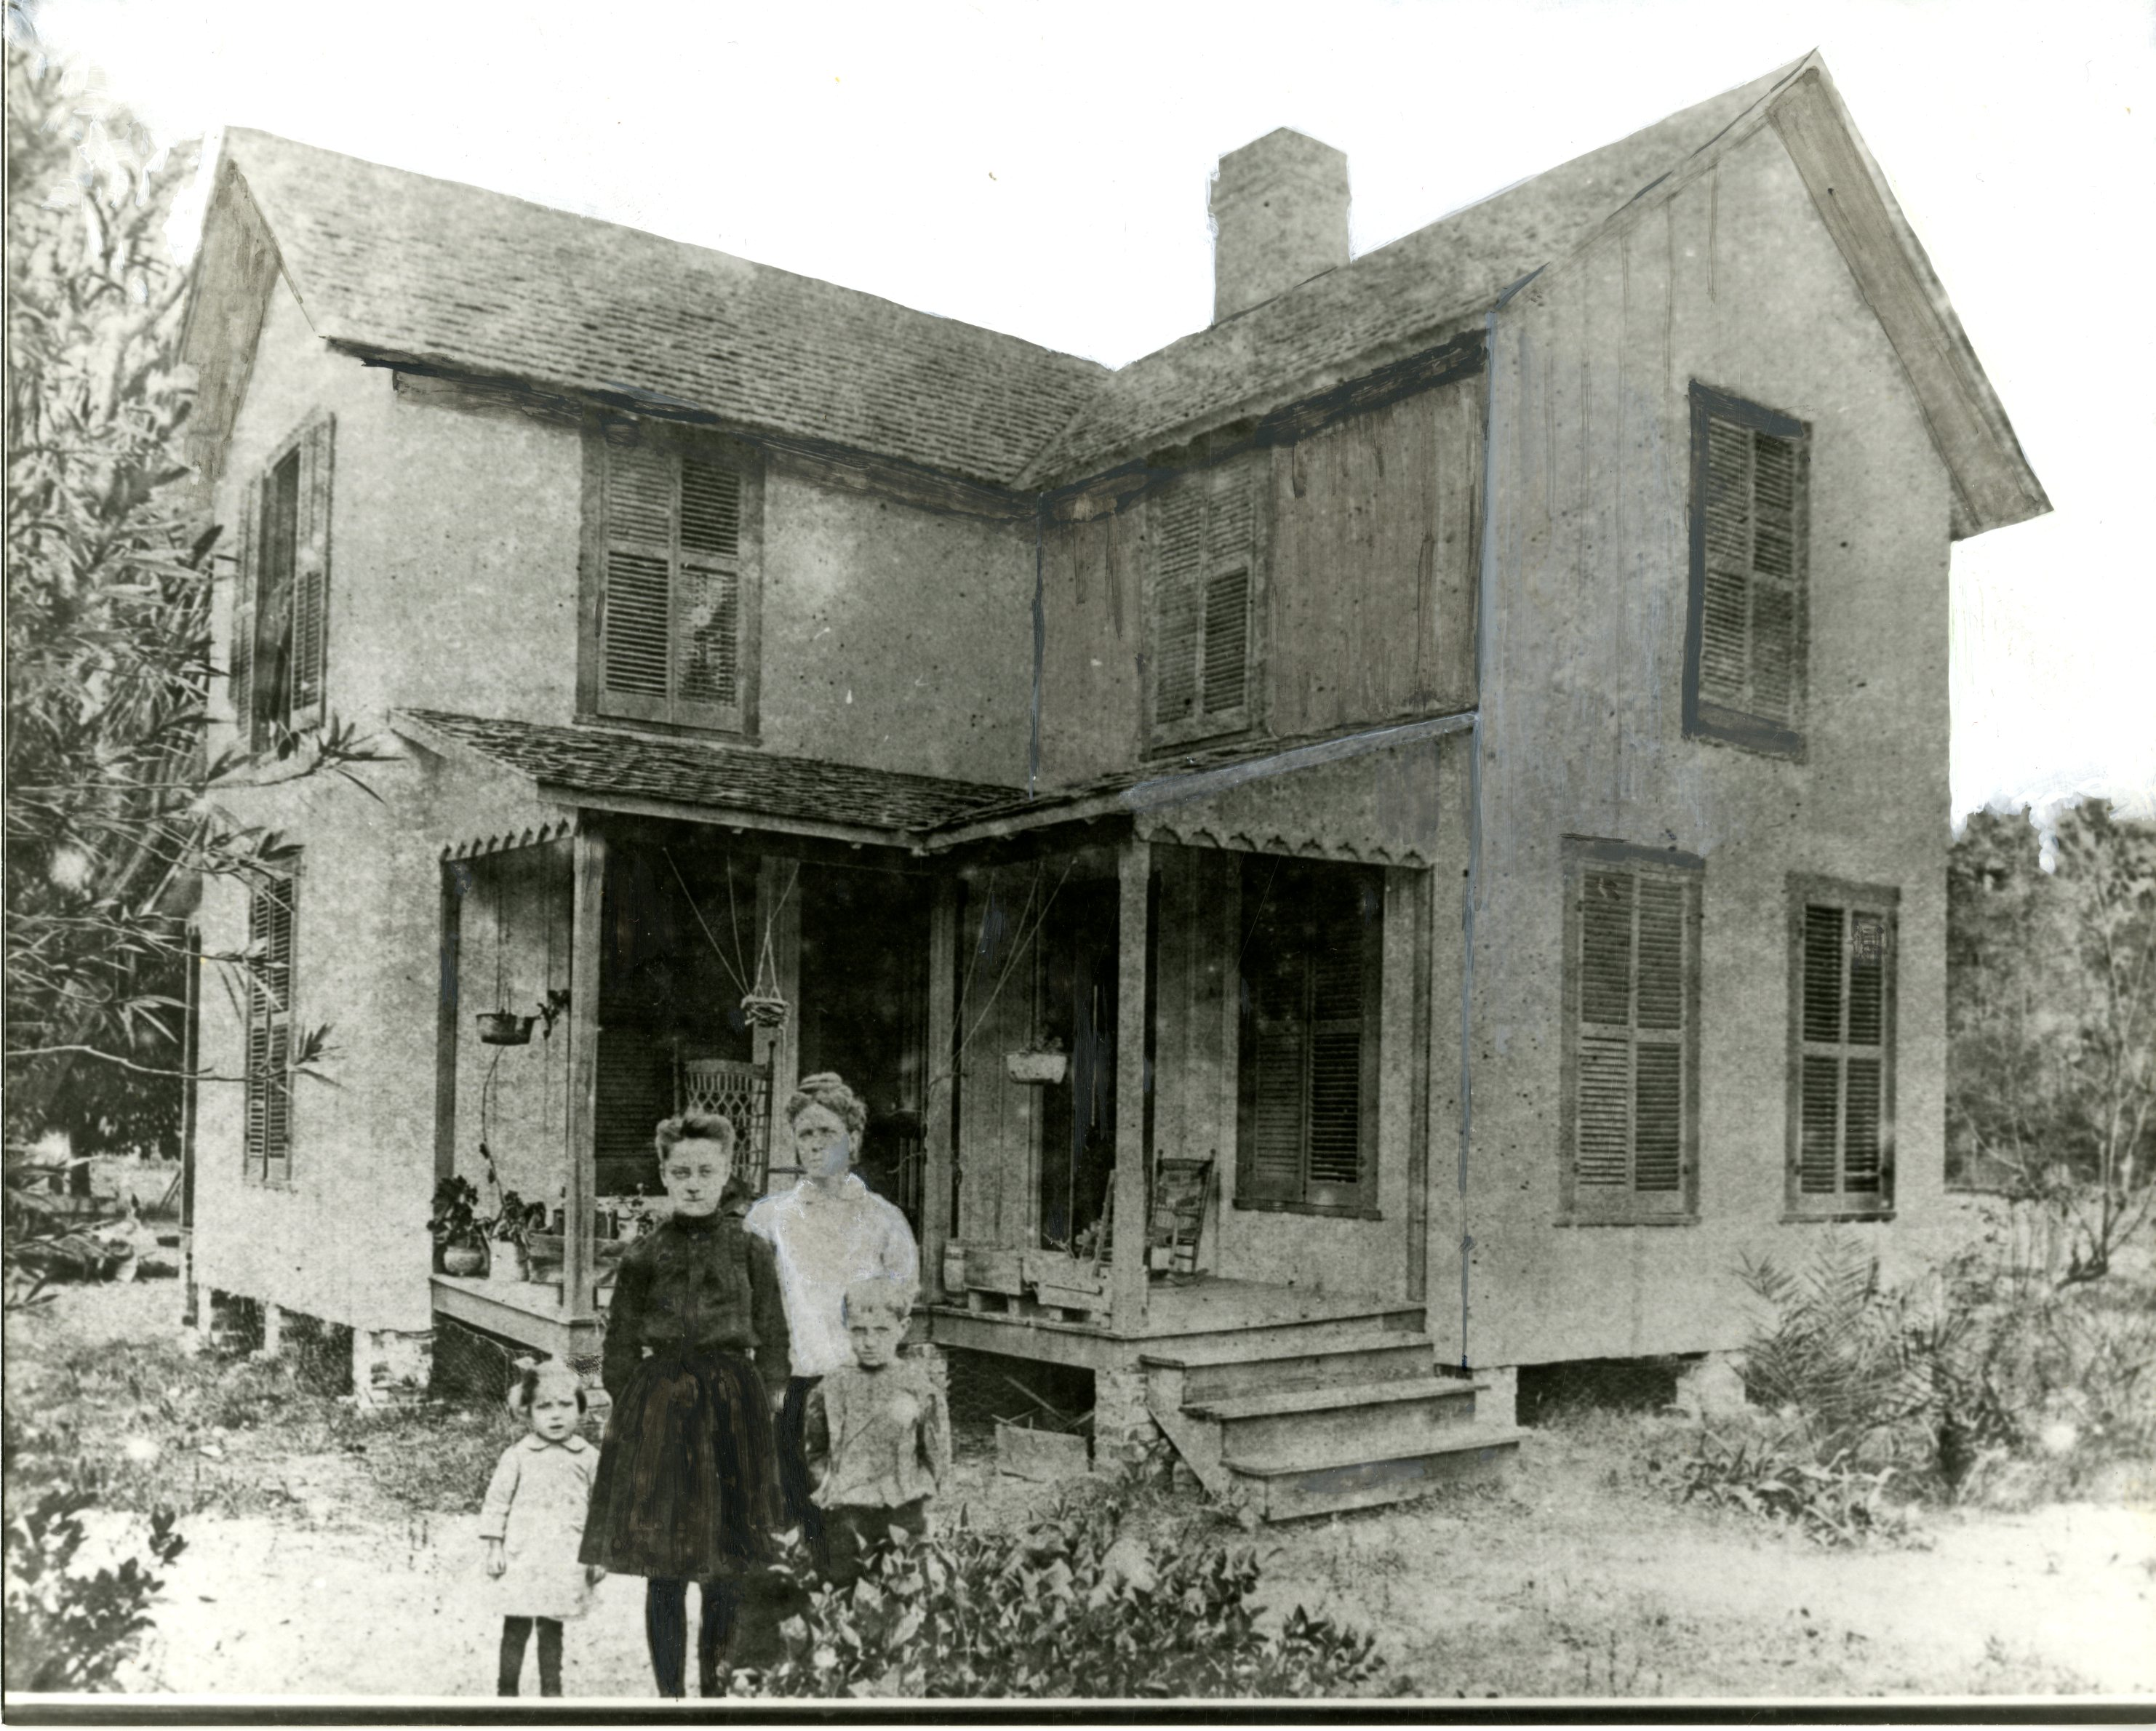 Mary Louise Lowe and her children, Corinna, Laura, and Sumner stand in front of the Lowe House, Anona, Florida, circa 1906.